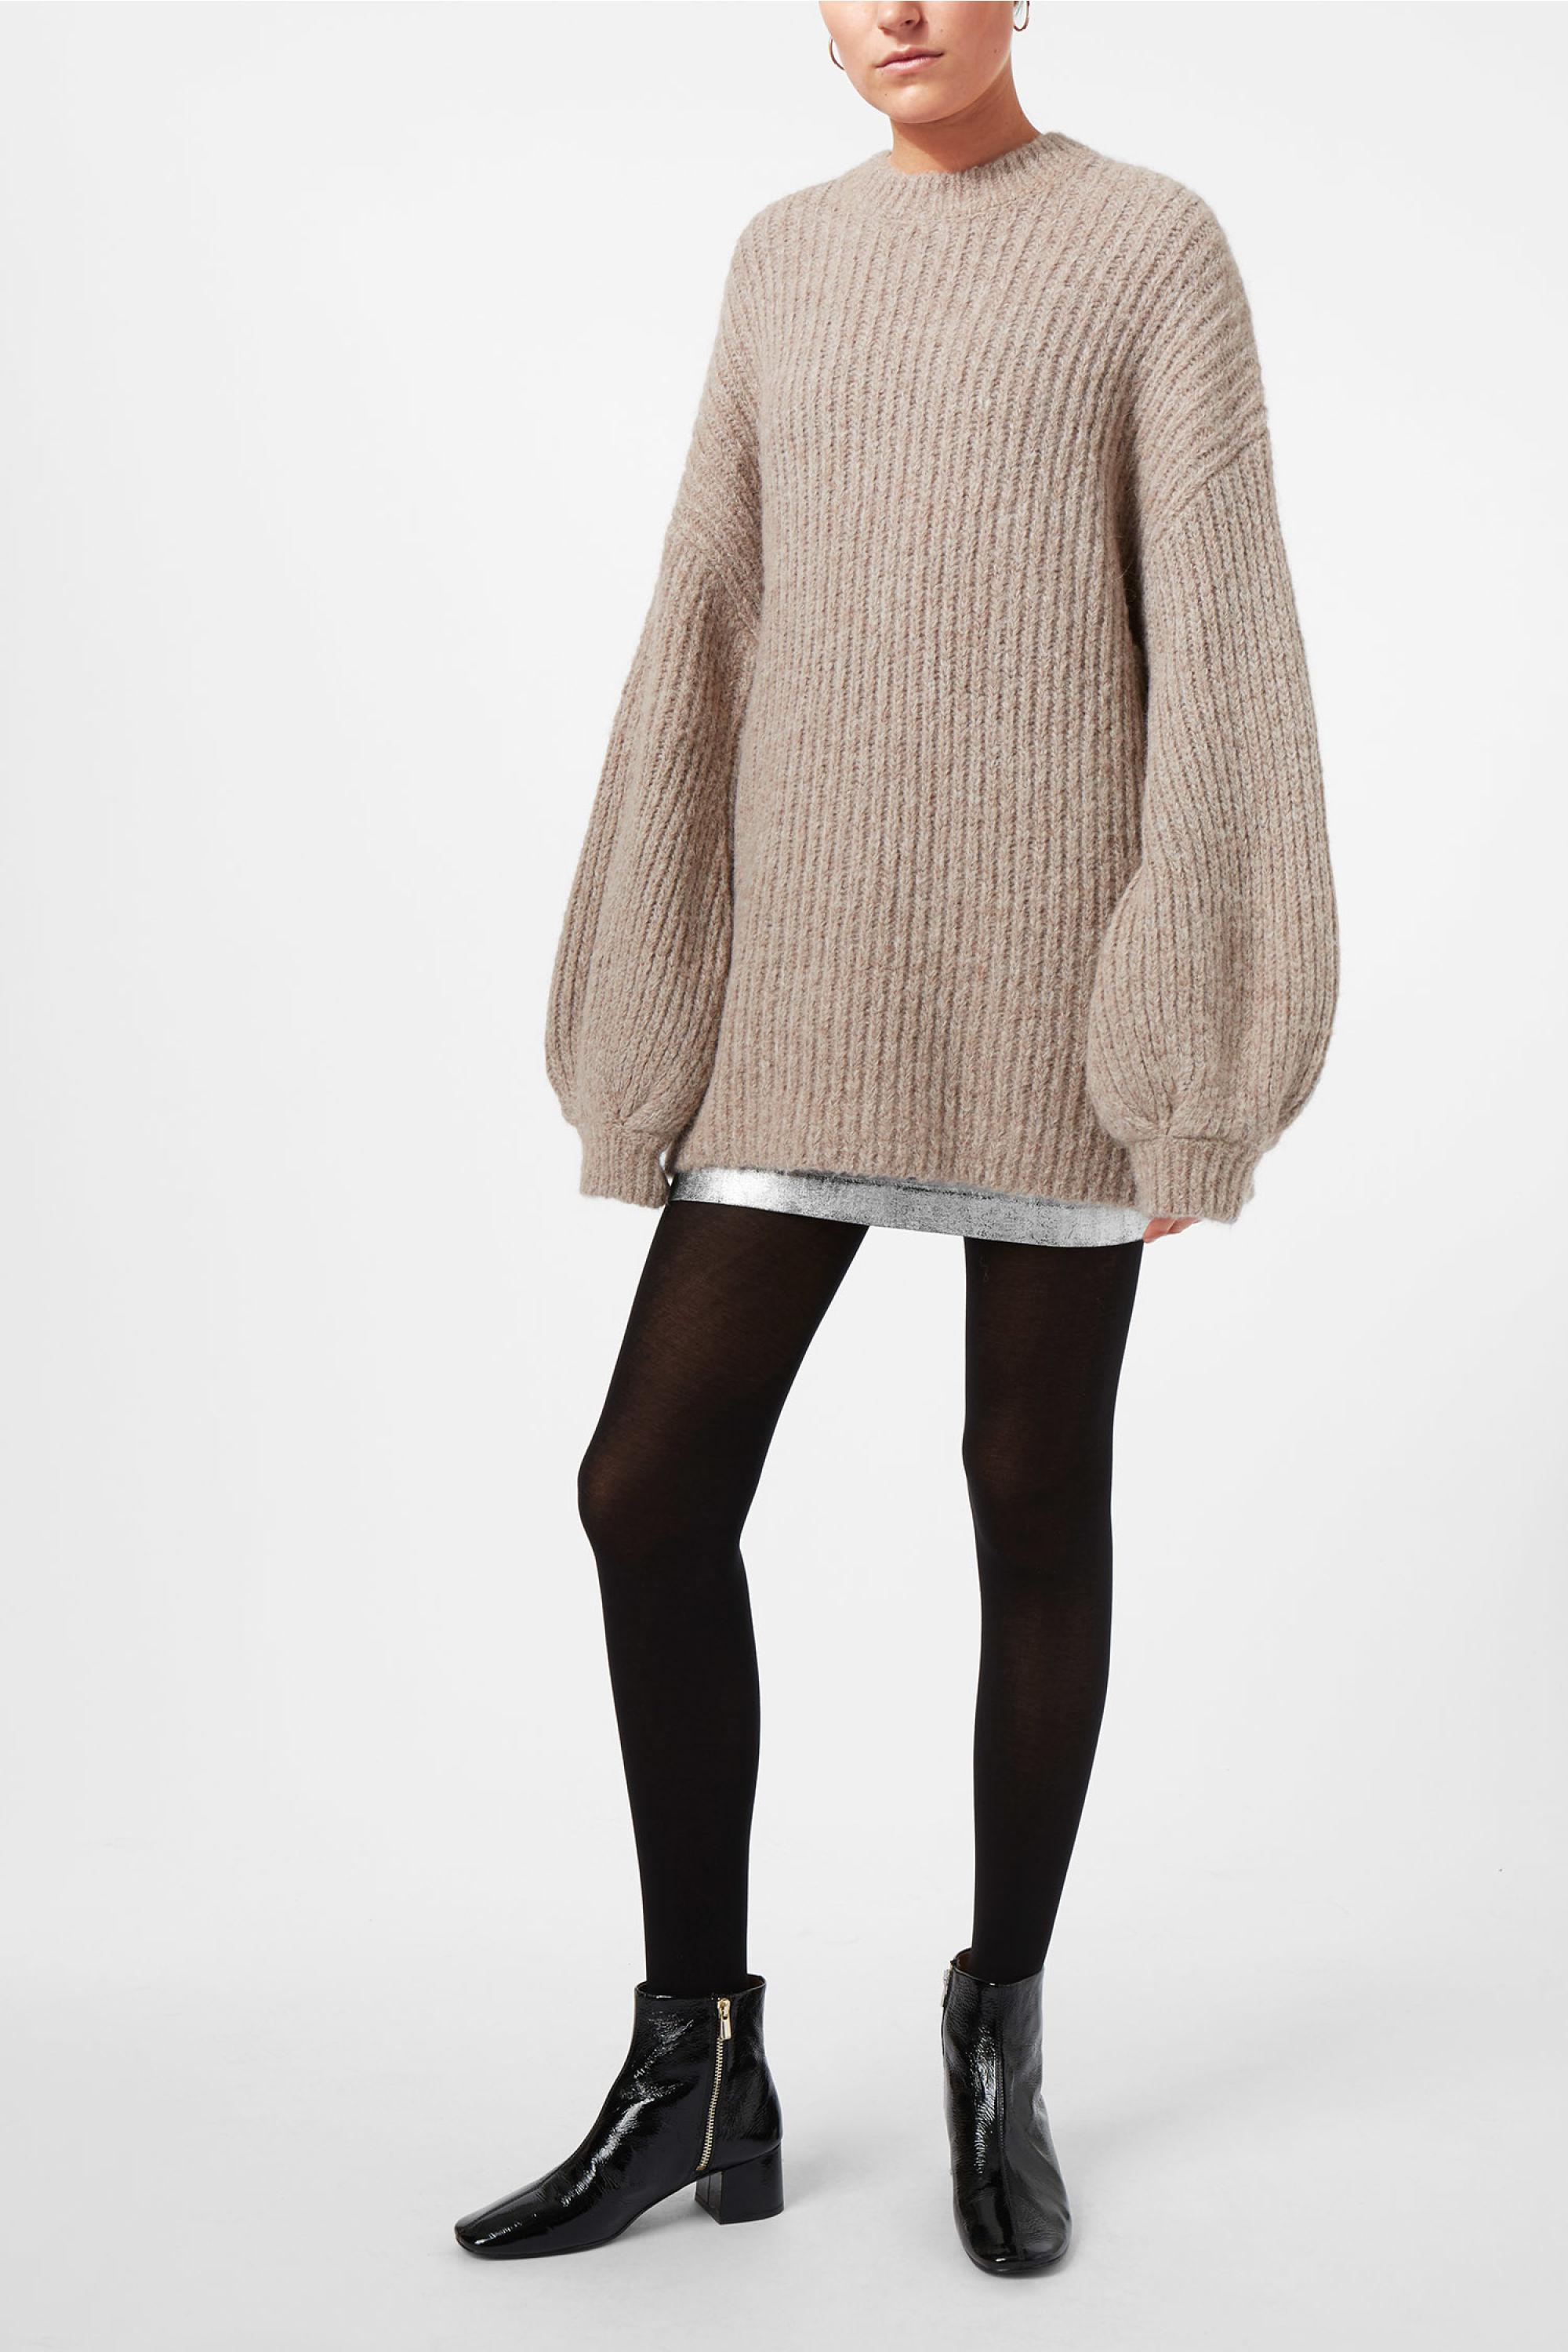 Weekday Tiziana Sweater in Brown - Lyst 488c03a9c